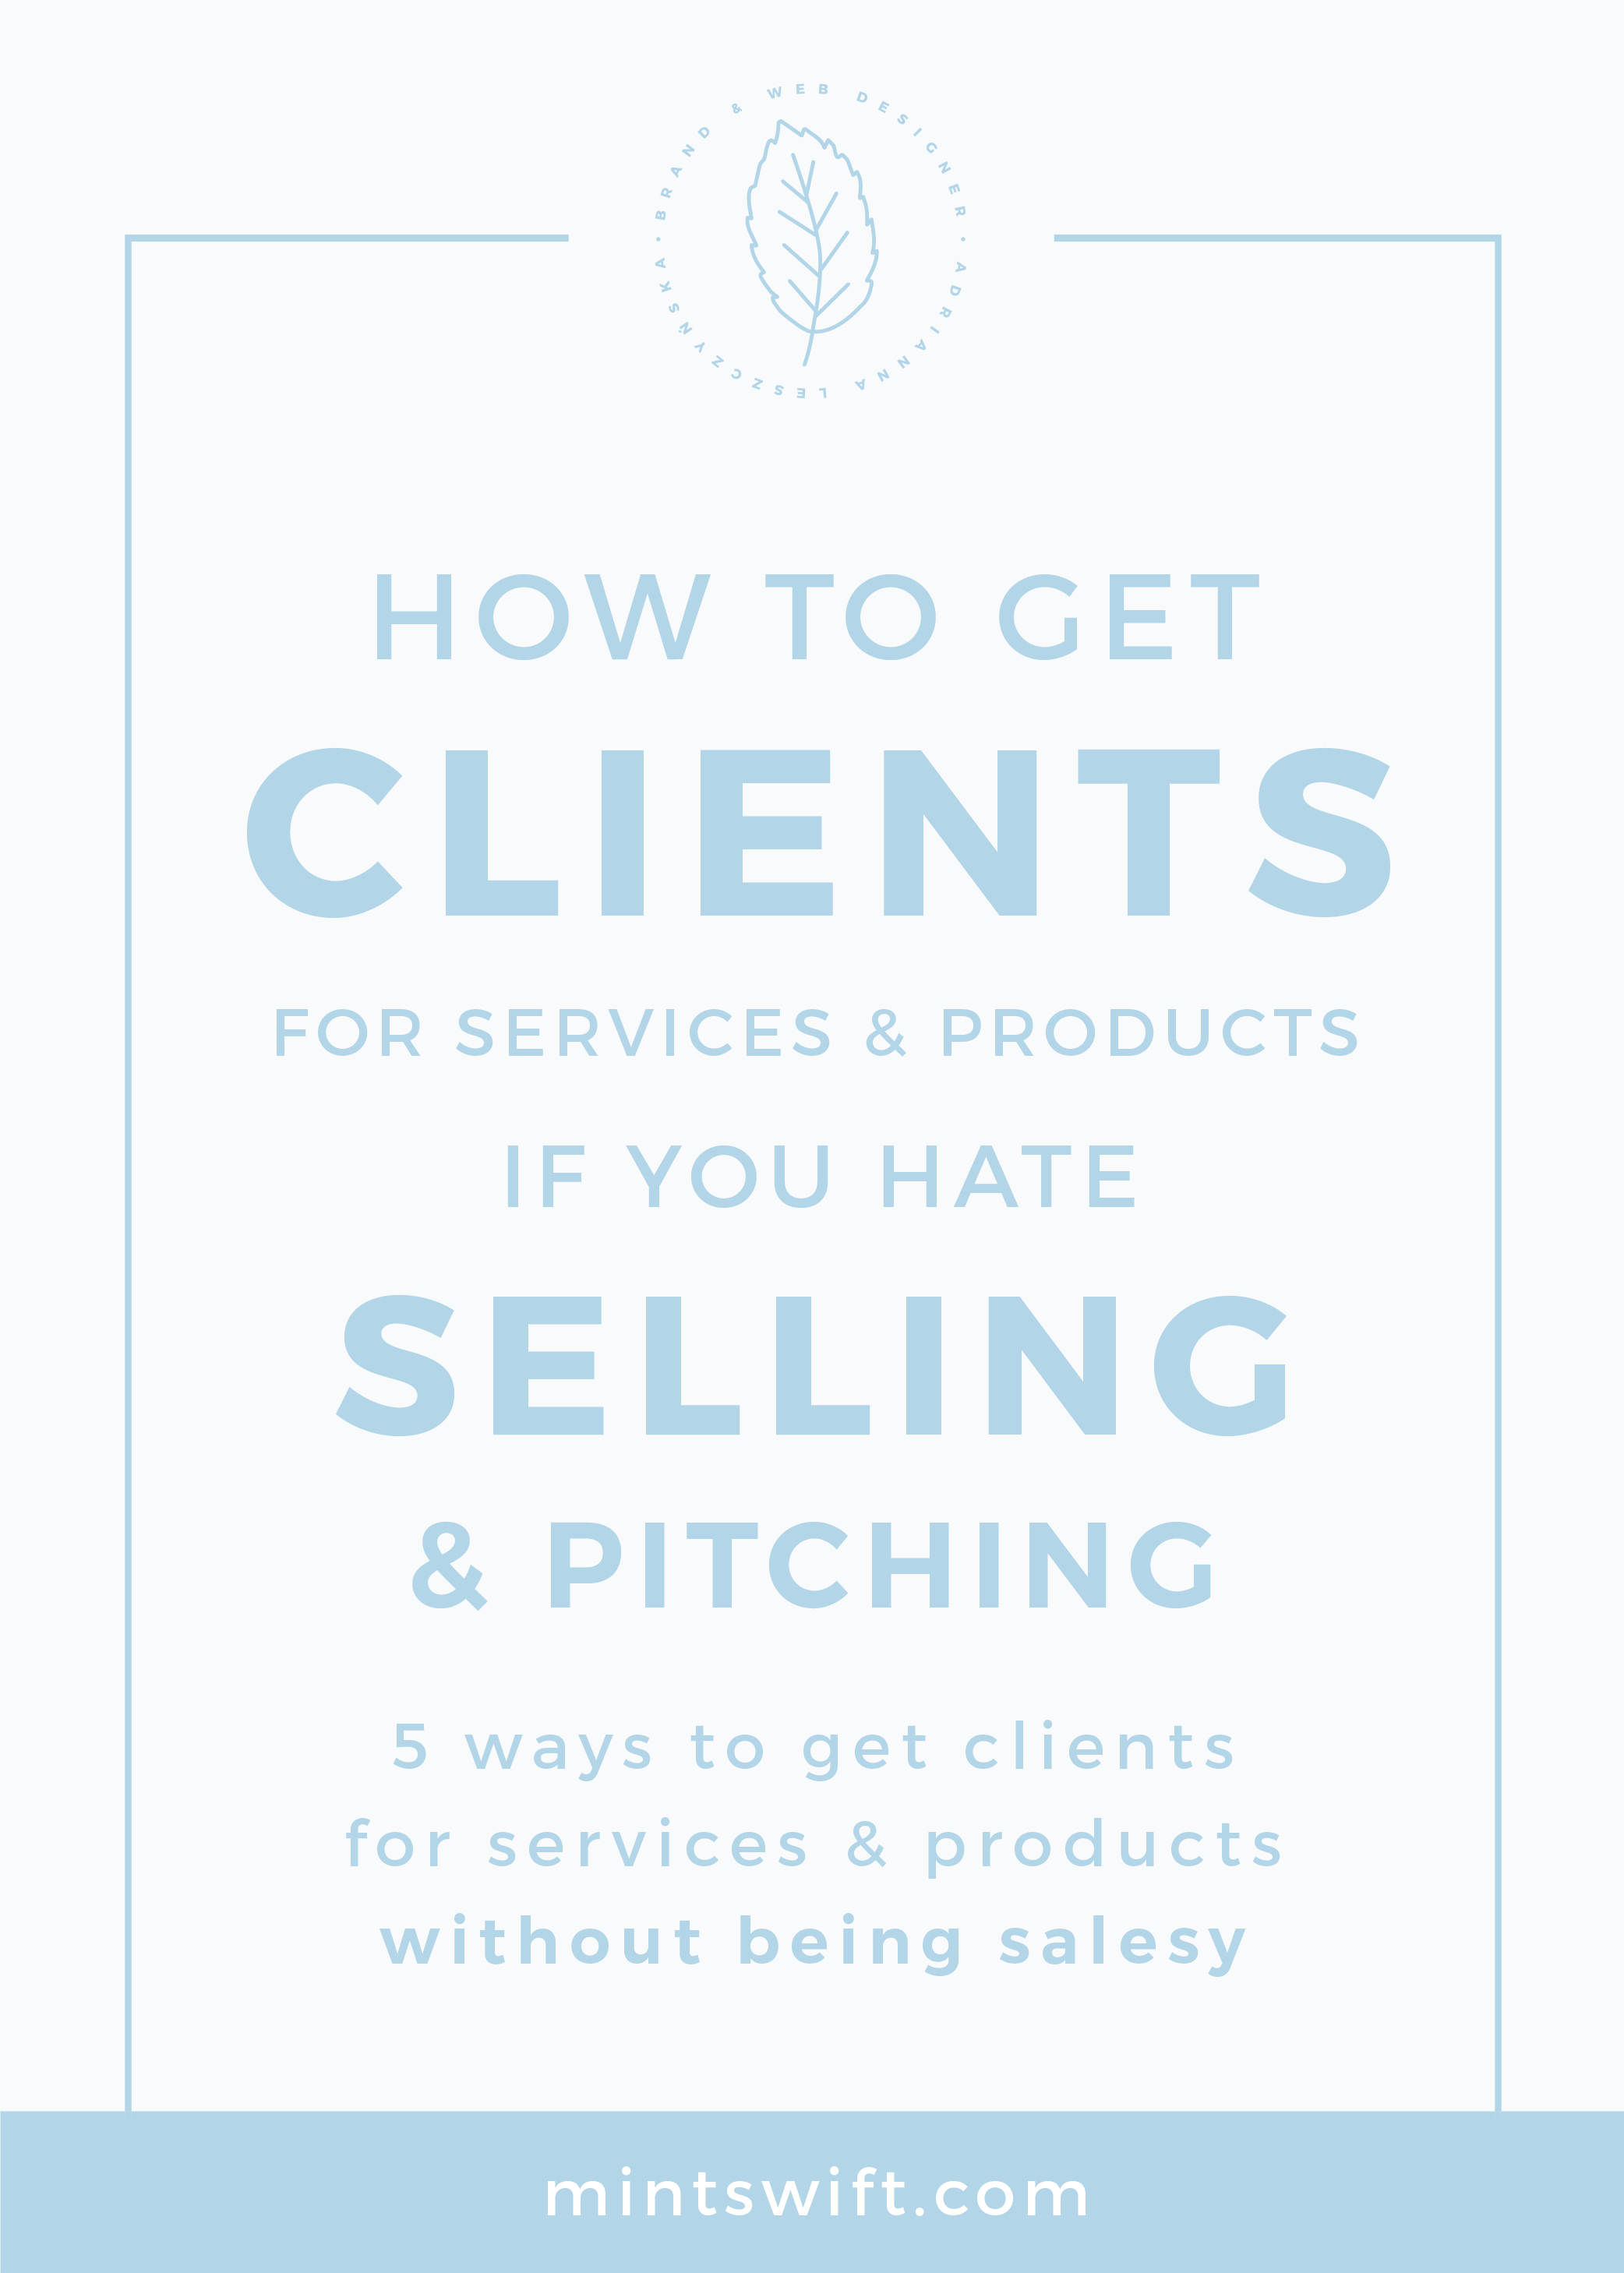 How to Get Clients For Services and Products if You Hate Selling and Pitching. 5 Ways to Get Clients for Services and Products Without Being Salesy MintSwift